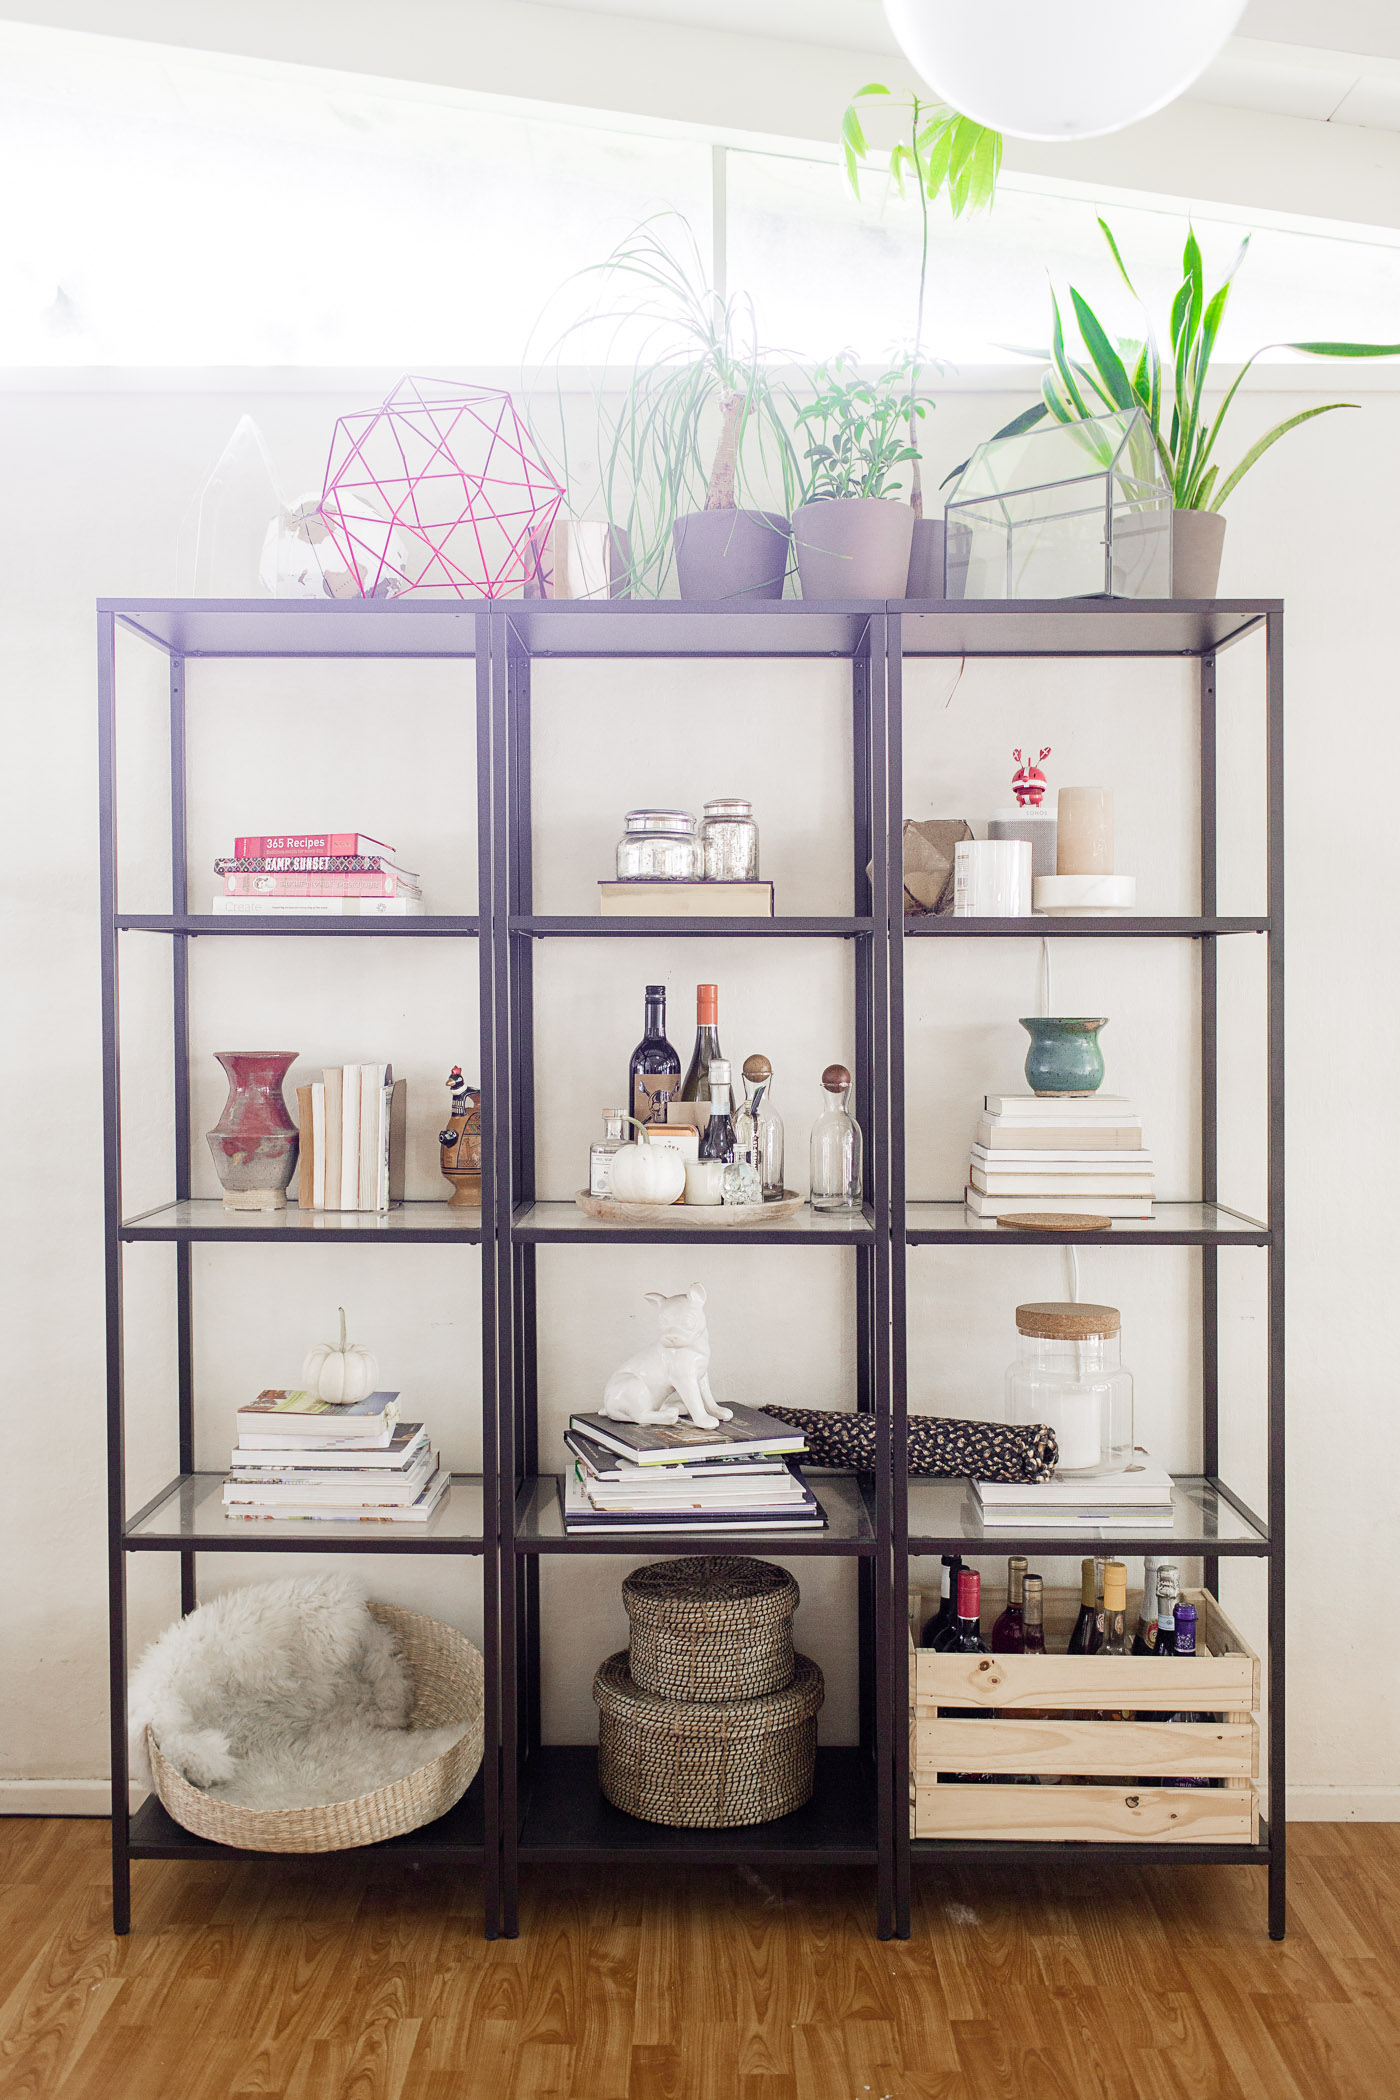 Easy steps to style a shelf (the BEFORE), featuring my Ikea Vittsjö shelves.